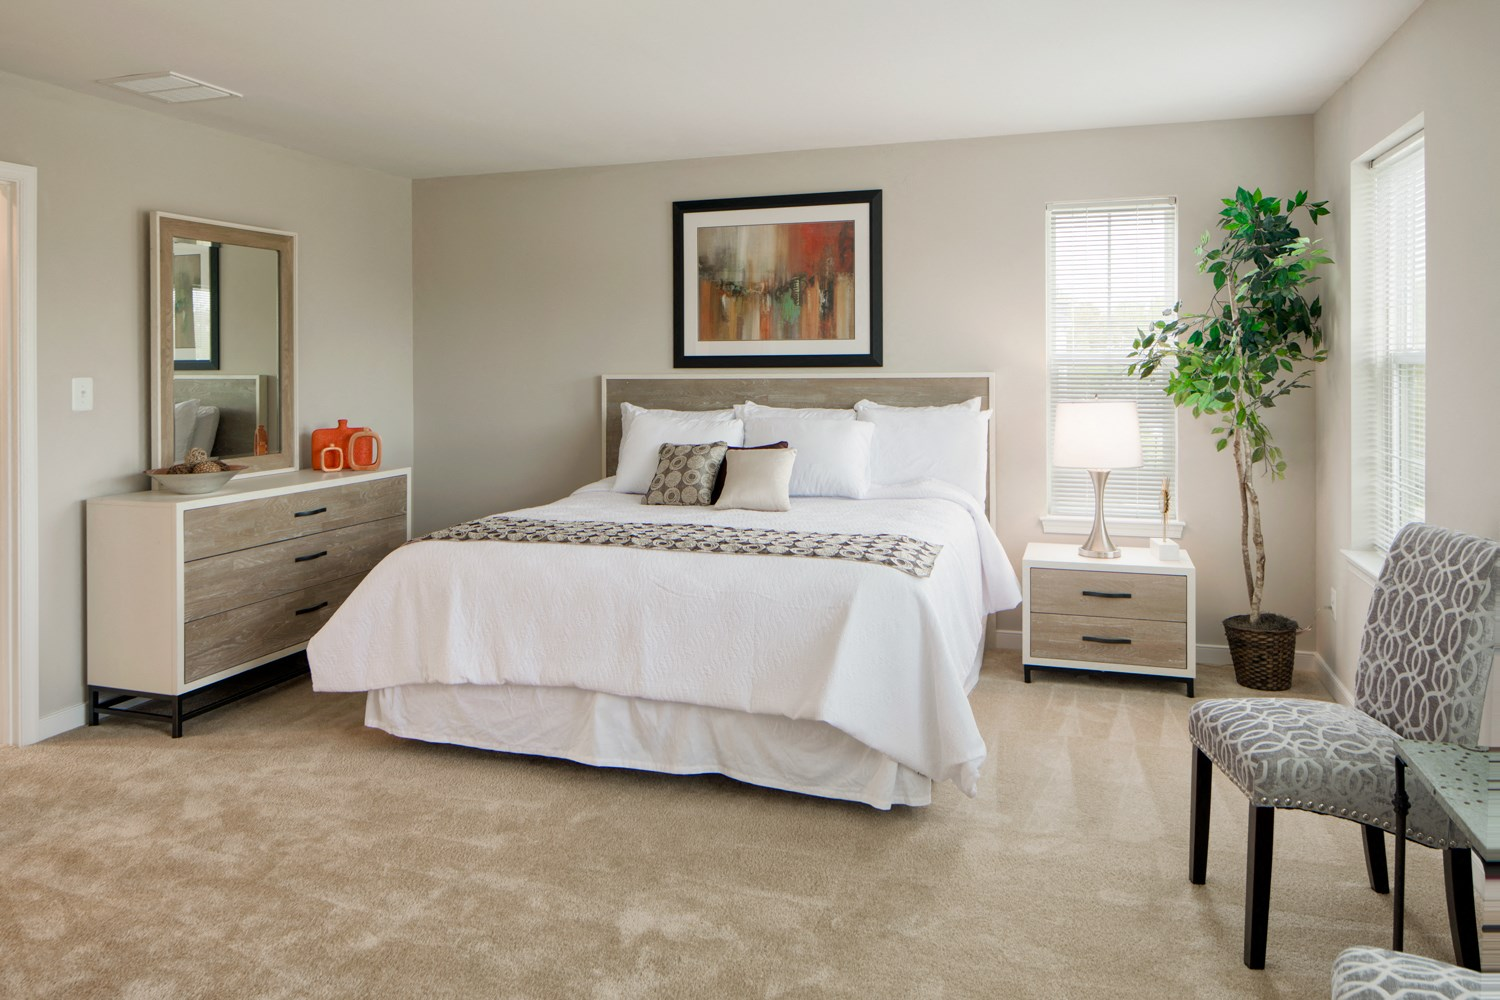 Spacious bedrooms with Over sized Windows at Townes at Pine Orchard, Ellicott City, MD 21042